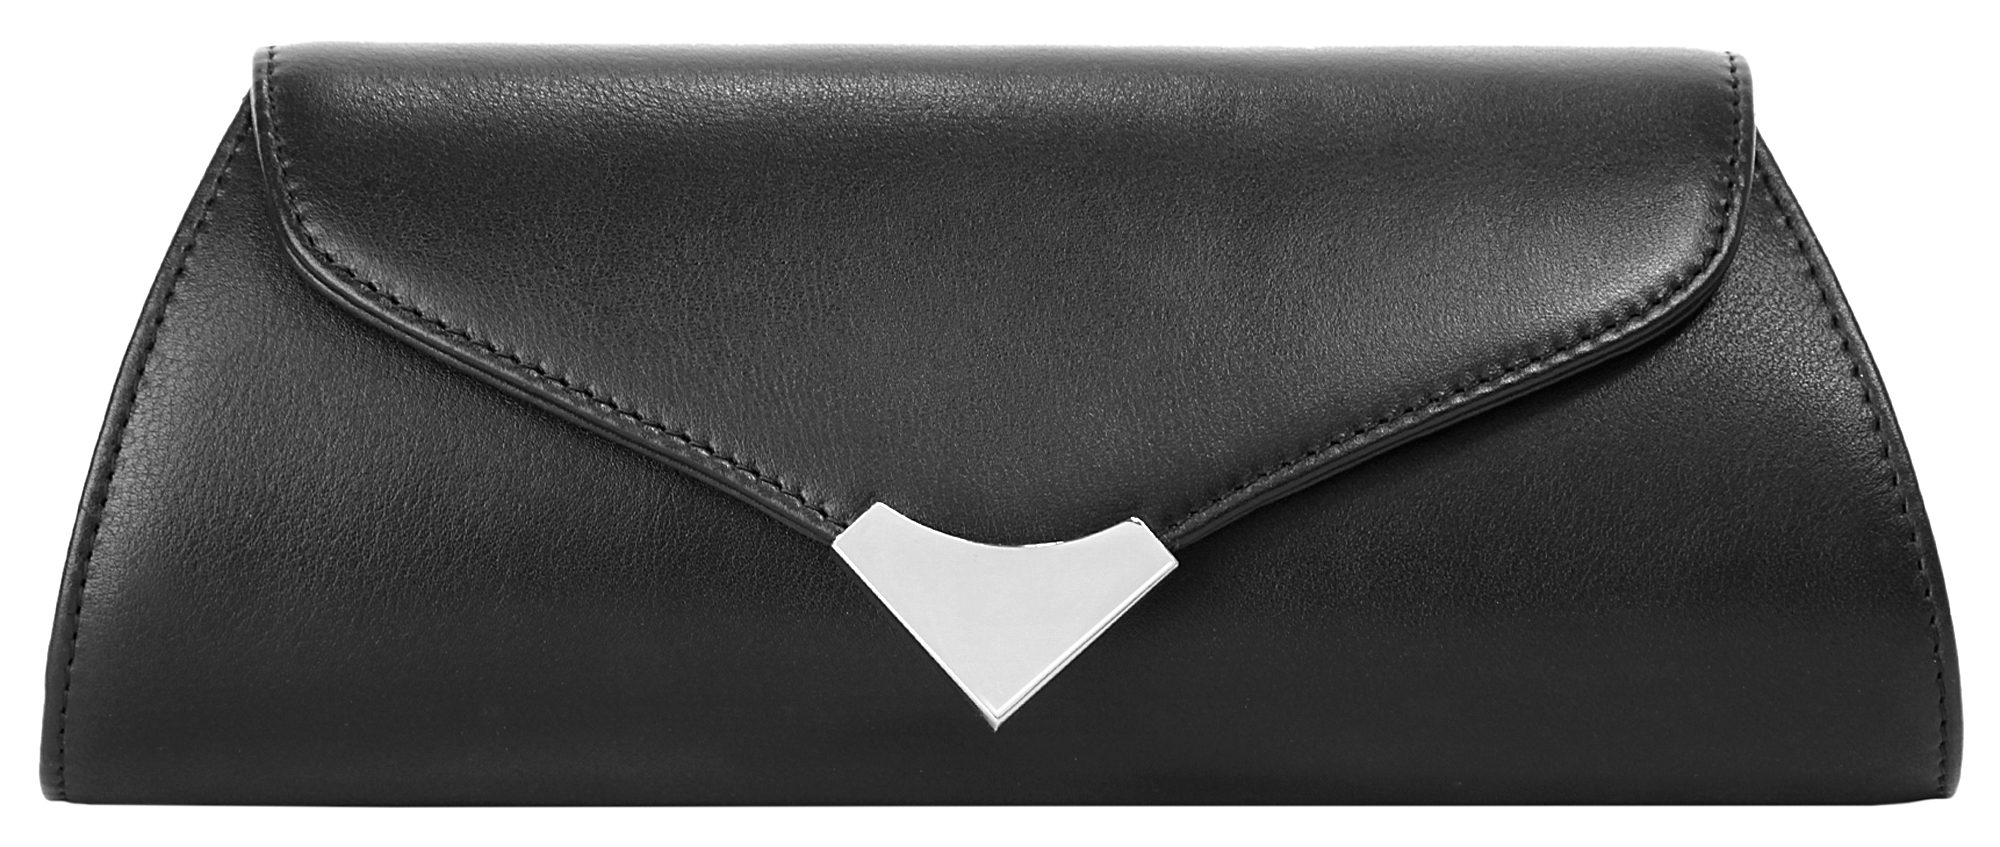 Eastline Leder Damen Clutch